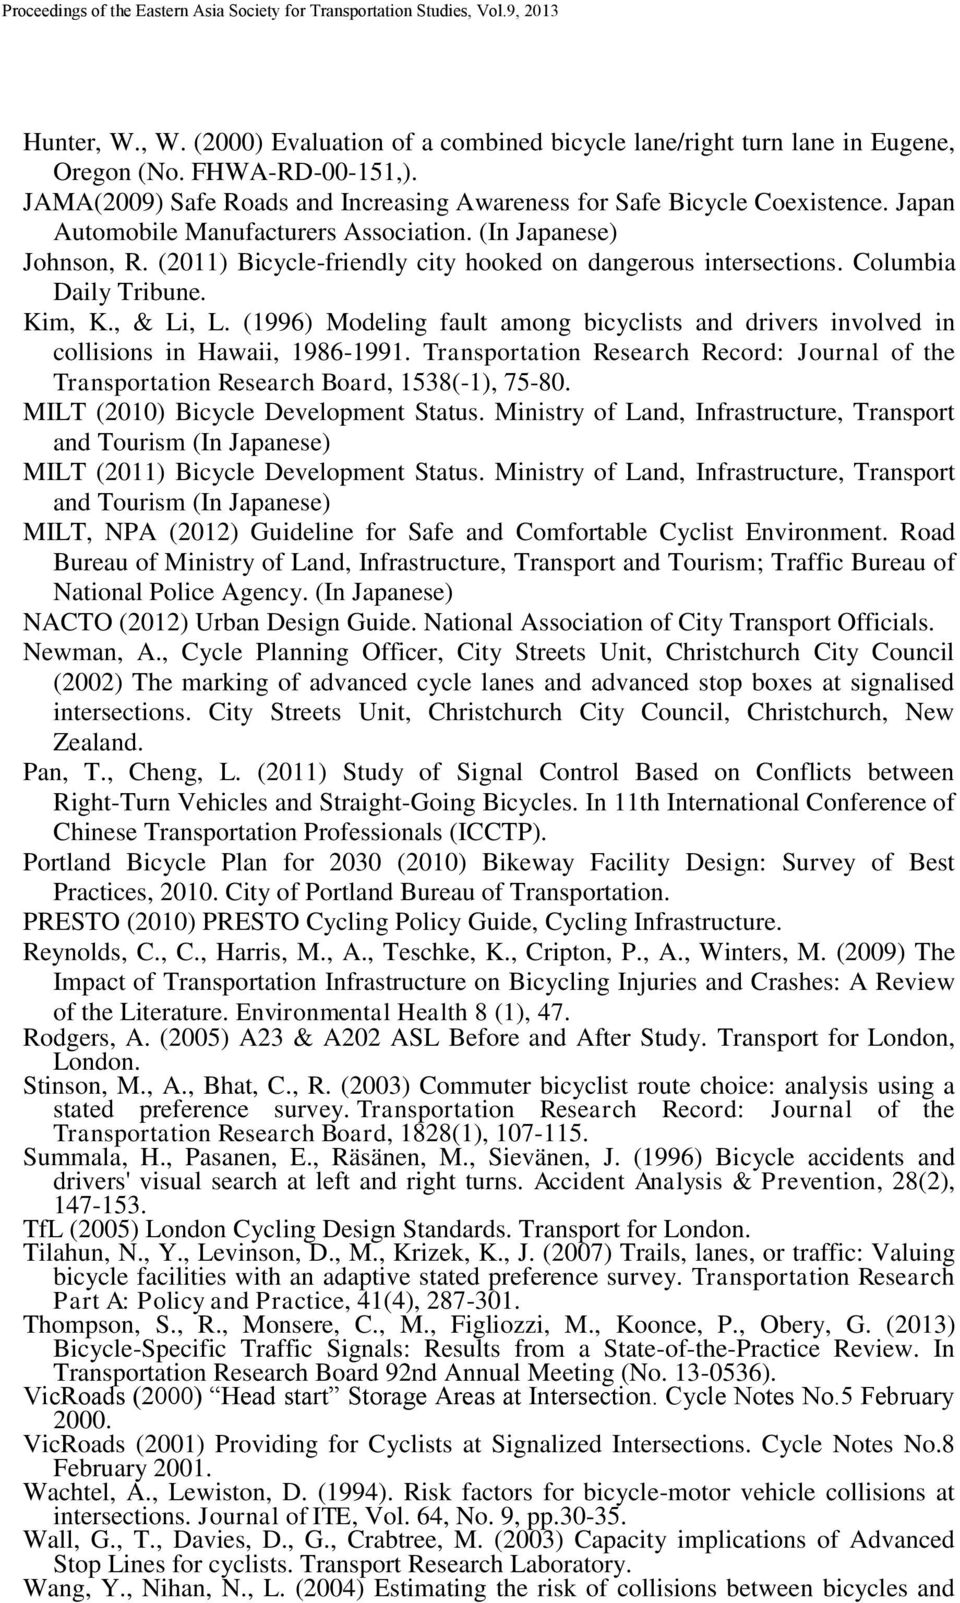 (1996) Modeling fault among bicyclists and drivers involved in collisions in Hawaii, 1986-1991. Transportation Research Record: Journal of the Transportation Research Board, 1538(-1), 75-80.